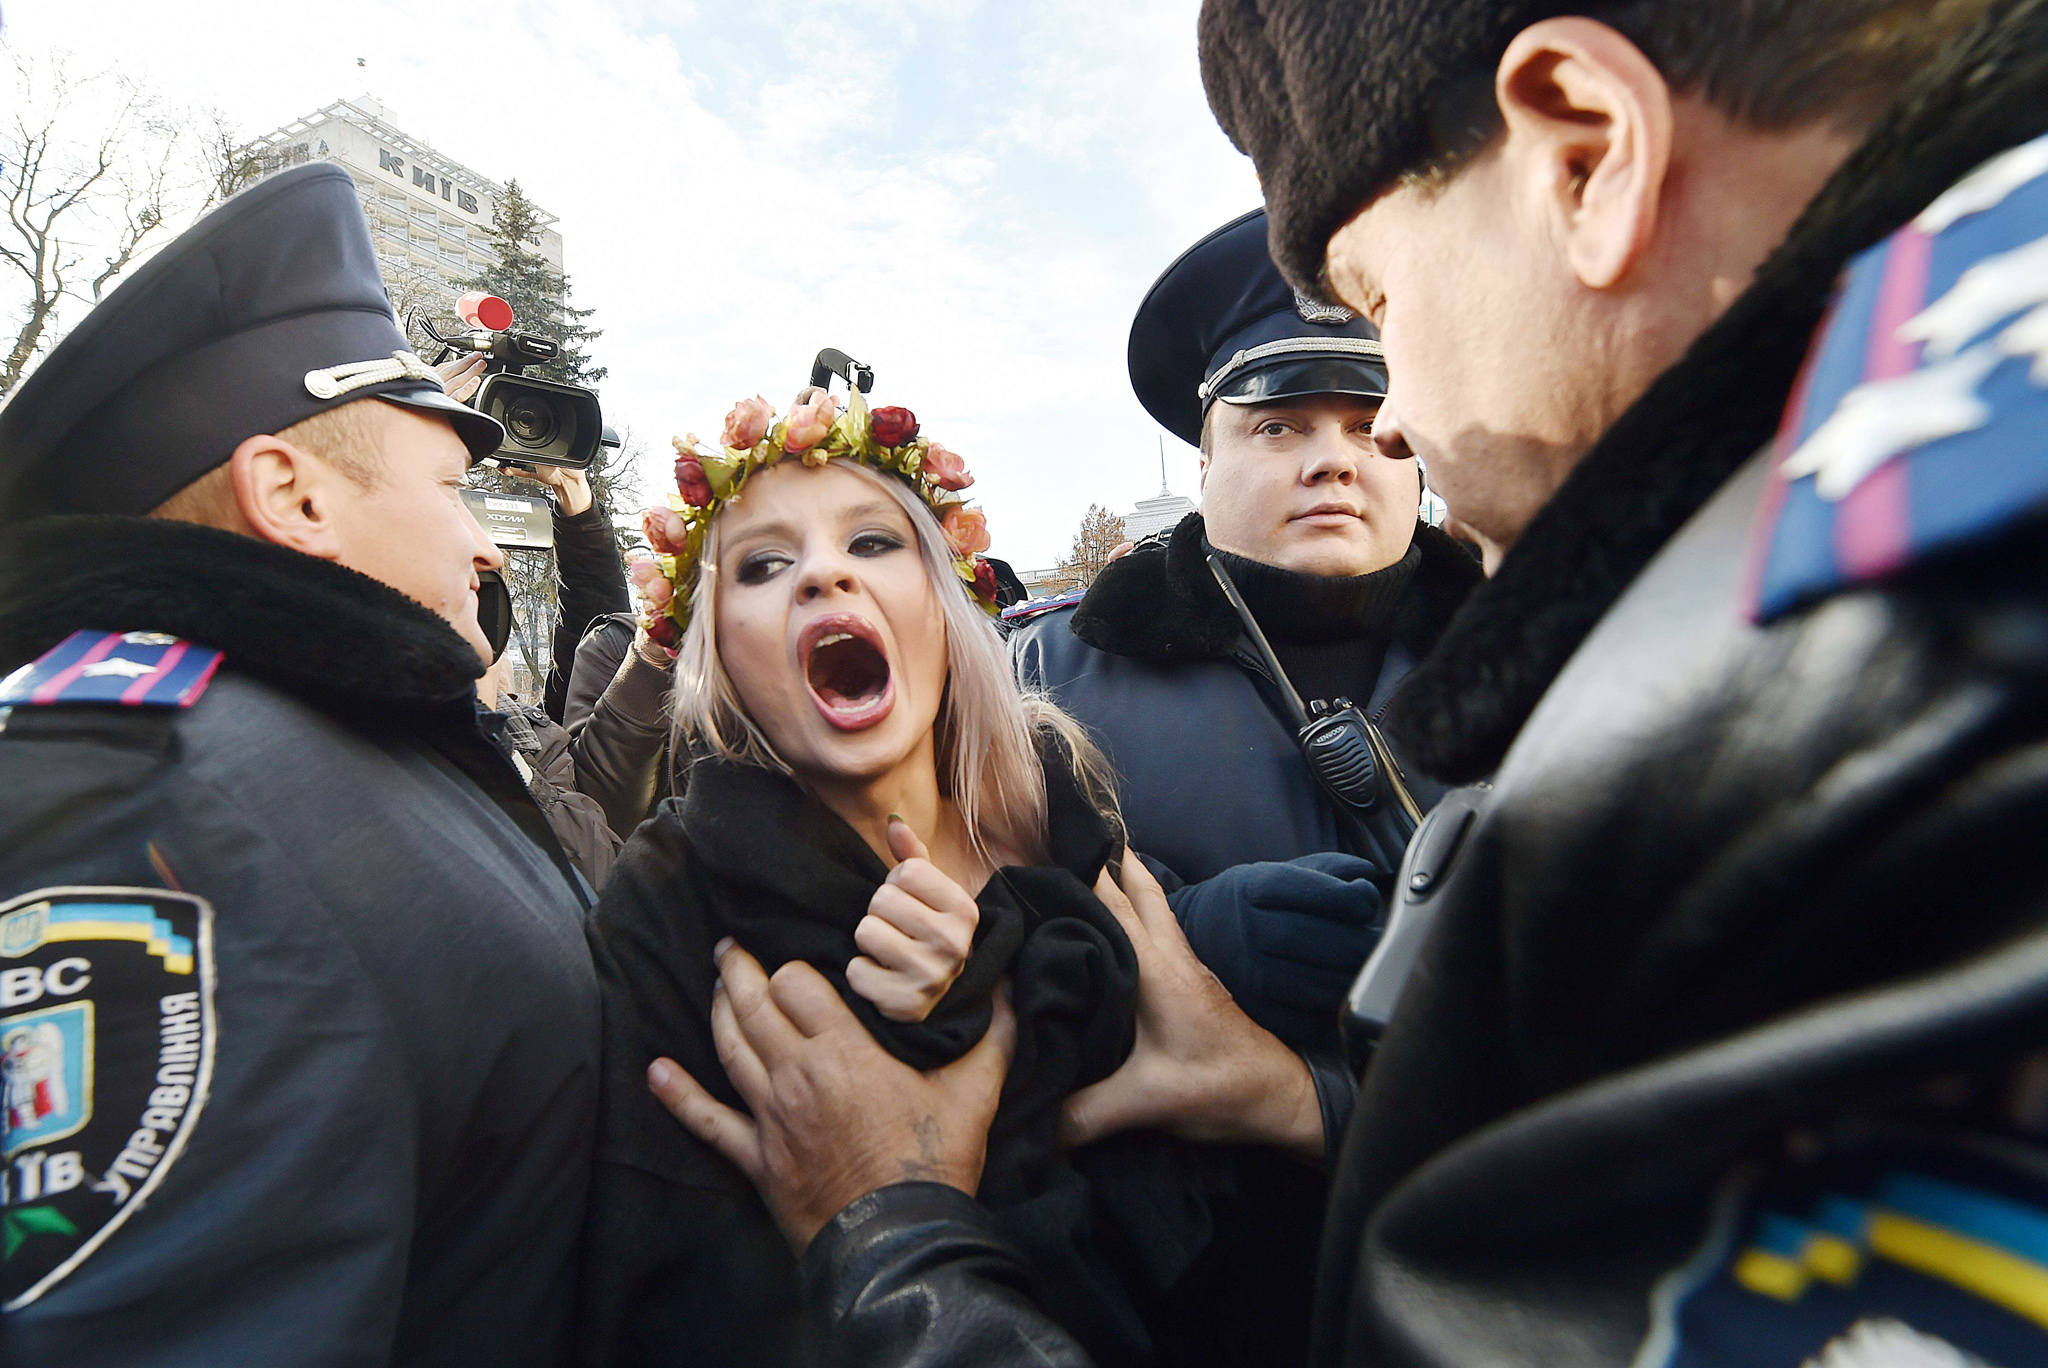 Ukrainian police detain an activist of t...Ukrainian police detain an activist of the feminist movement Femen as she shouts slogans during a demonstration calling for gay rights outside the Ukrainian parliament in Kiev on November 12, 2015. Ukraine's parliament are due to hold a vote to adopt a ban on anti-gay discrimination in the workplace -- a law needed to secure visa-free travel to most EU nations. AFP PHOTO / SERGEI SUPINSKYSERGEI SUPINSKY/AFP/Getty Images